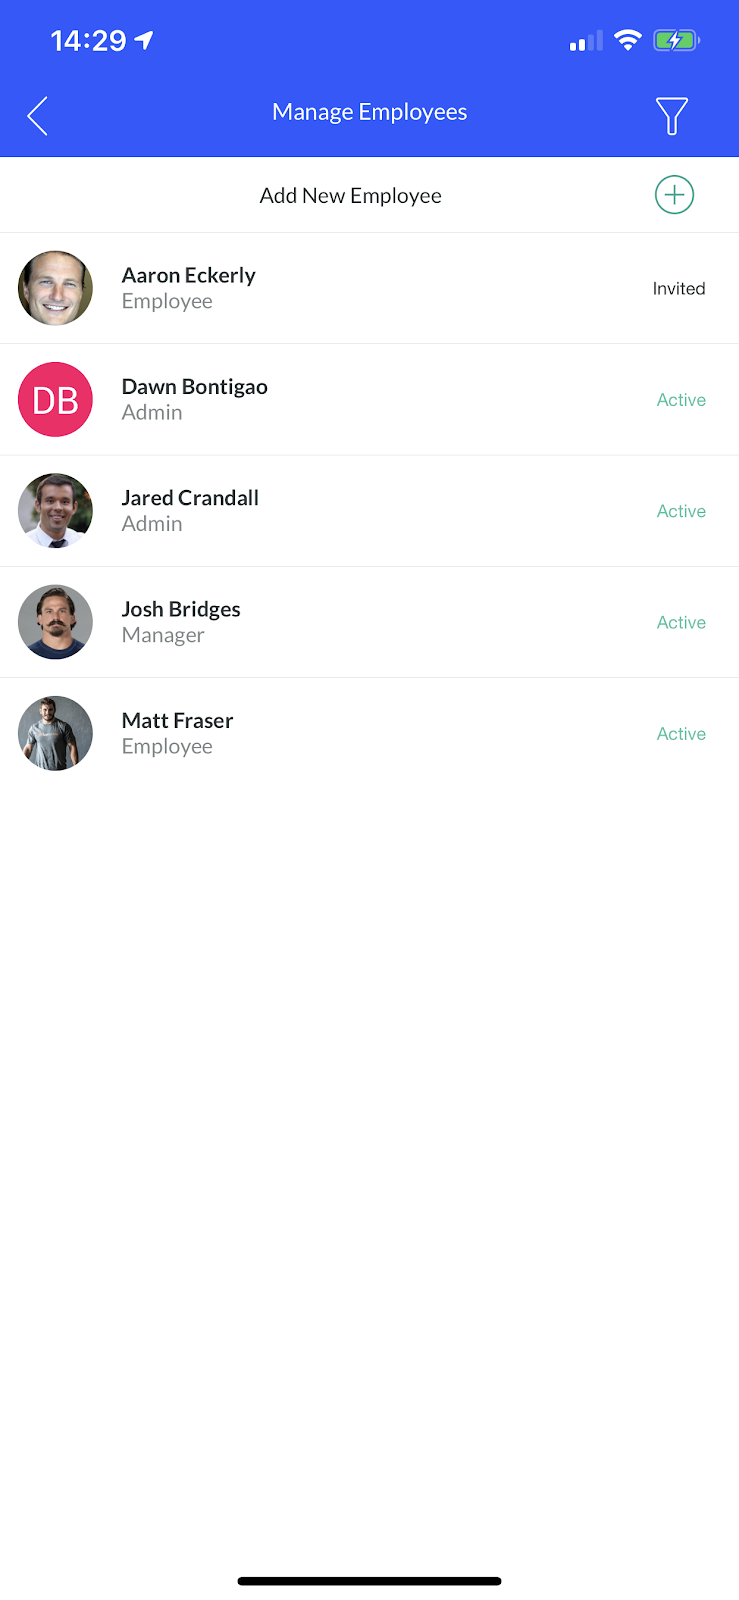 Screenshot showing the where you can add or remove employees within the 'Manage Employees' screen